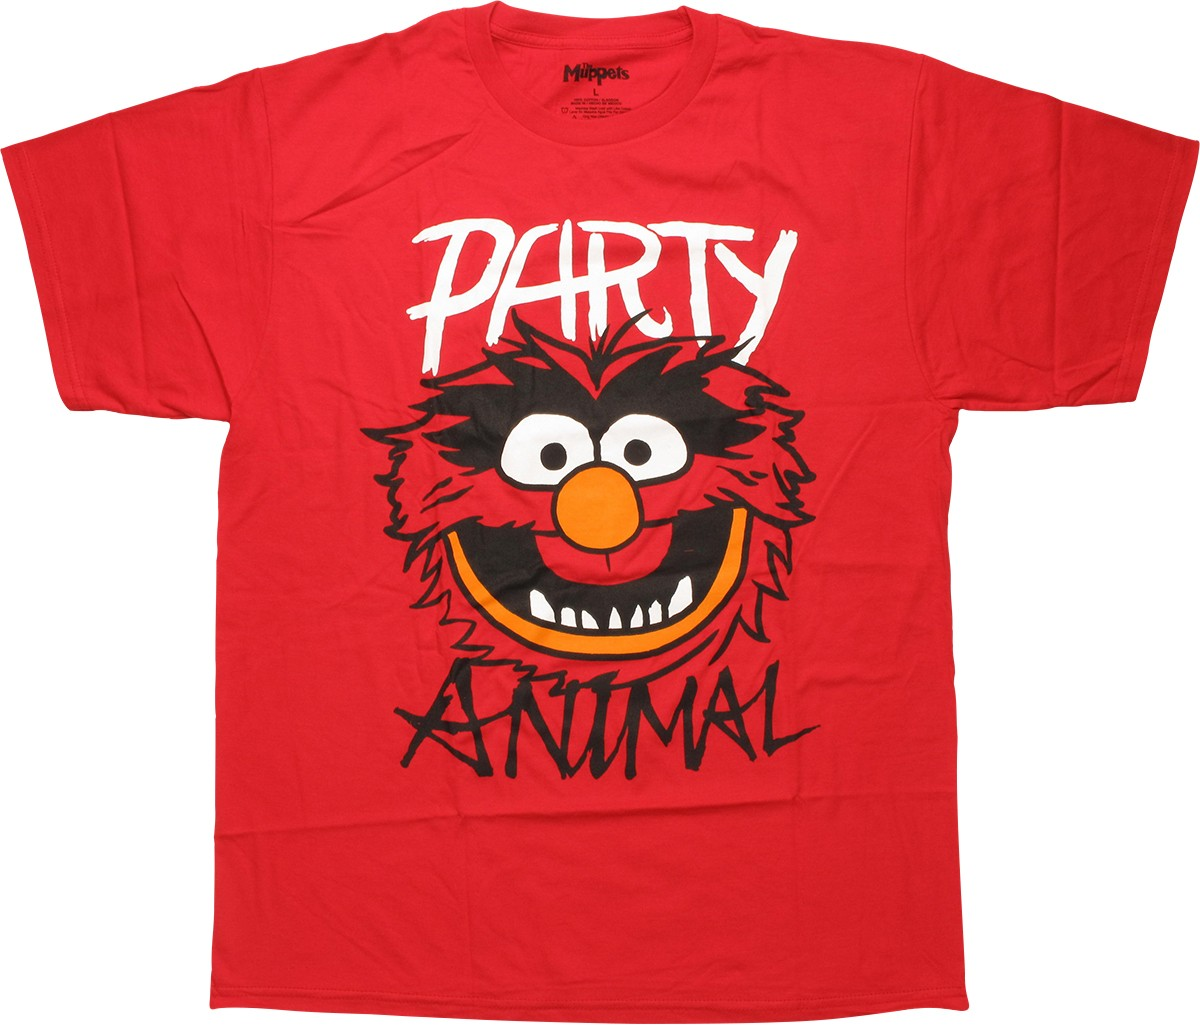 Muppets party animal red t shirt for Animal tee shirts online